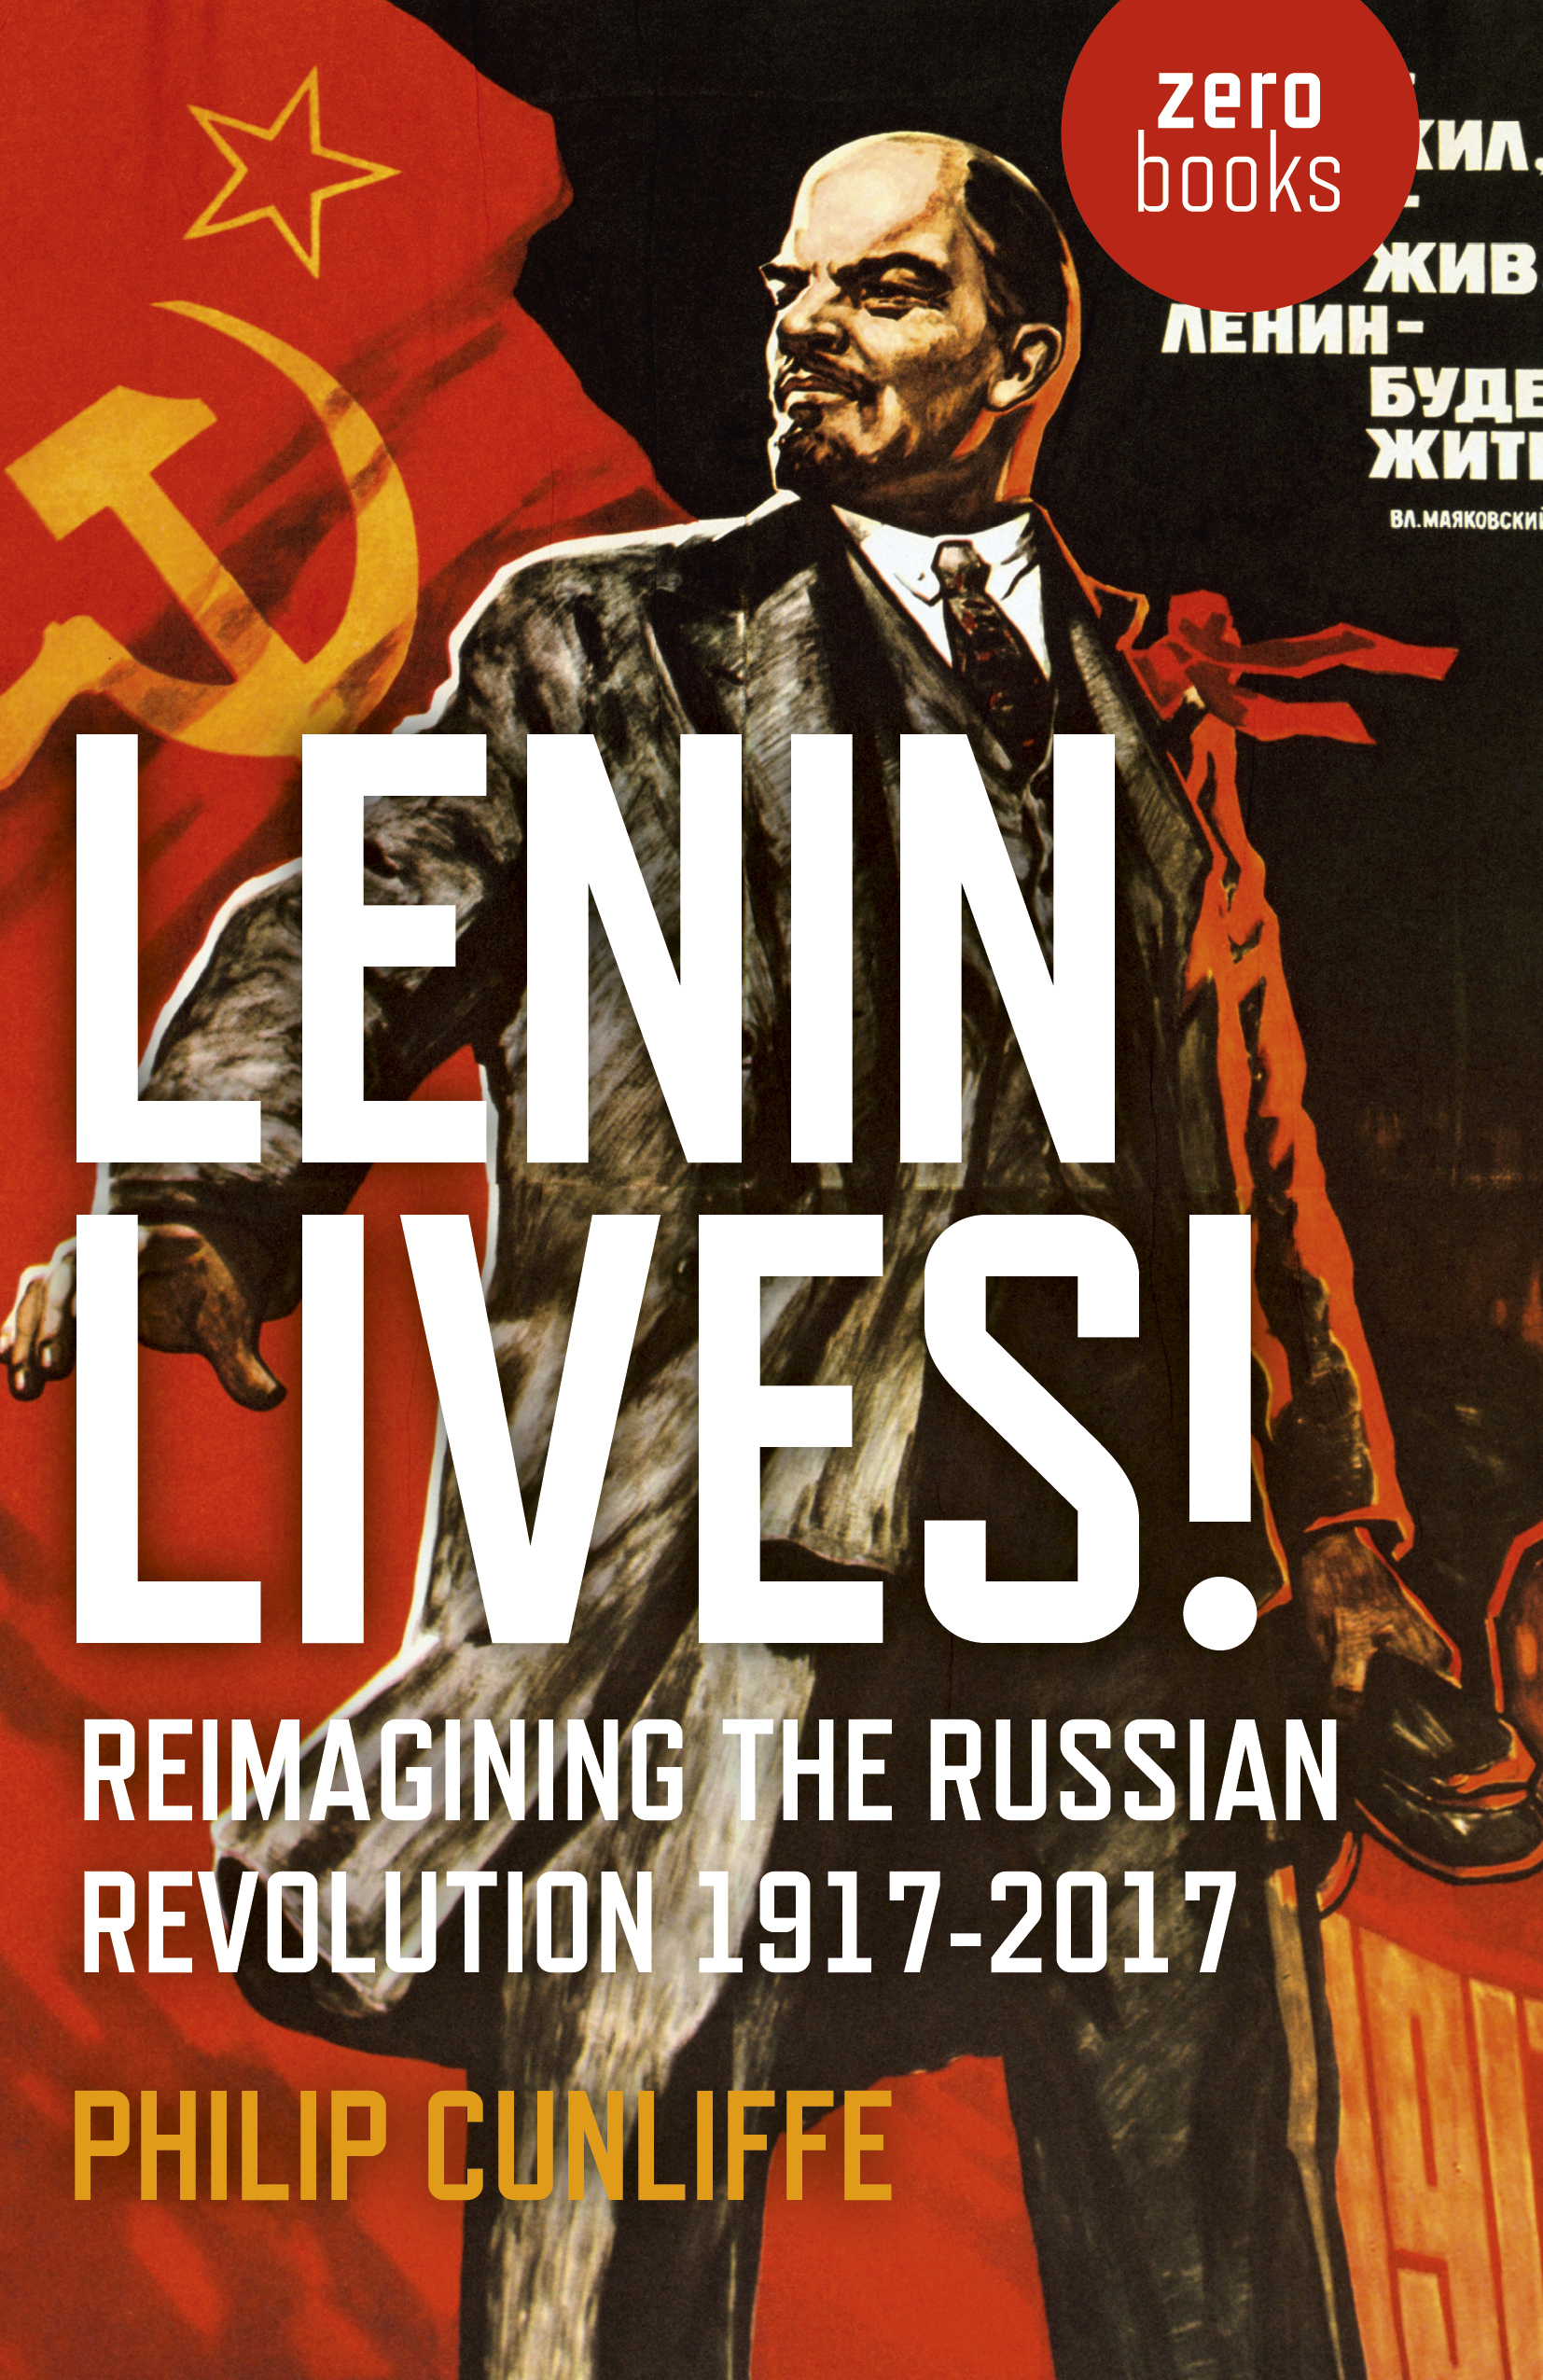 The cover of Lenin Lives